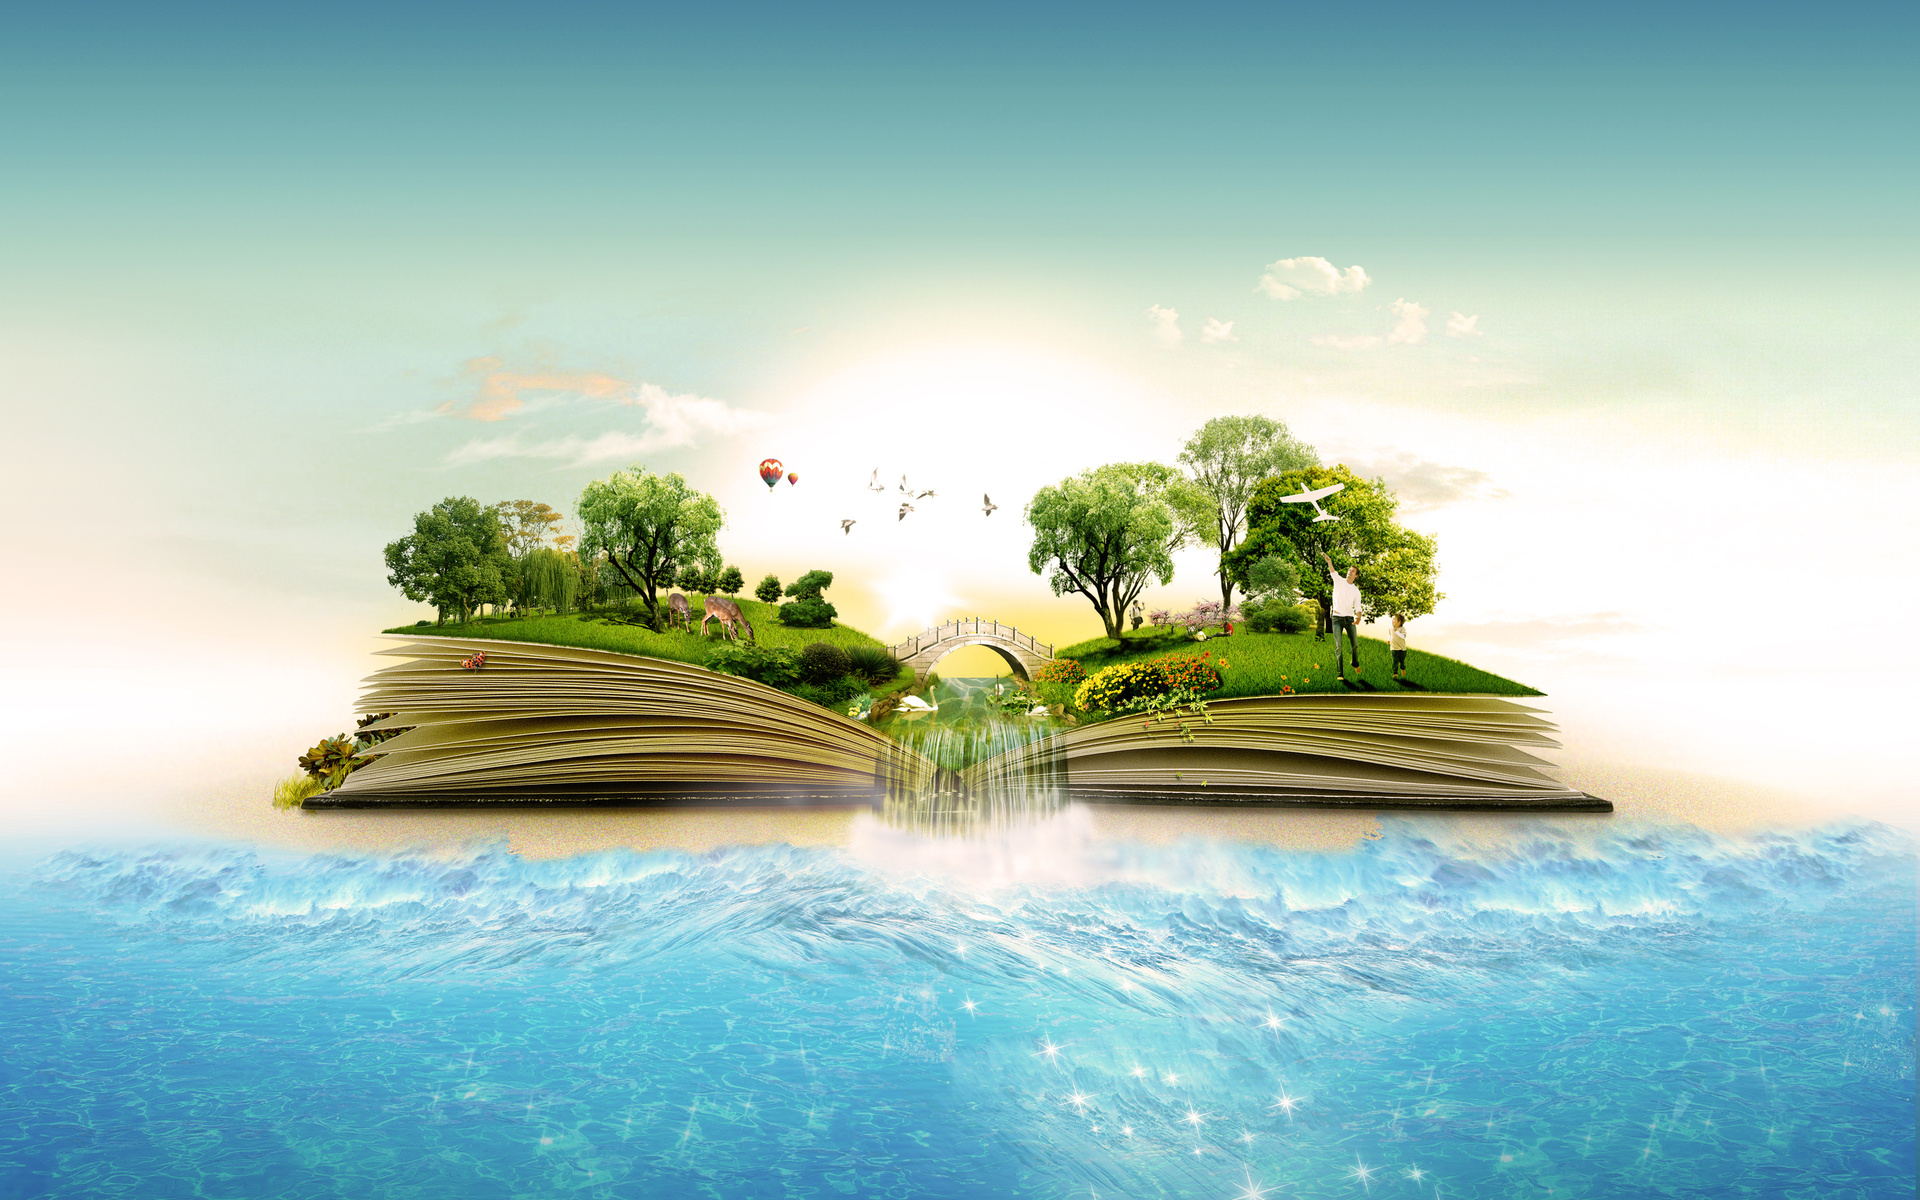 magical jungle book & ocean wallpapers | magical jungle book & ocean